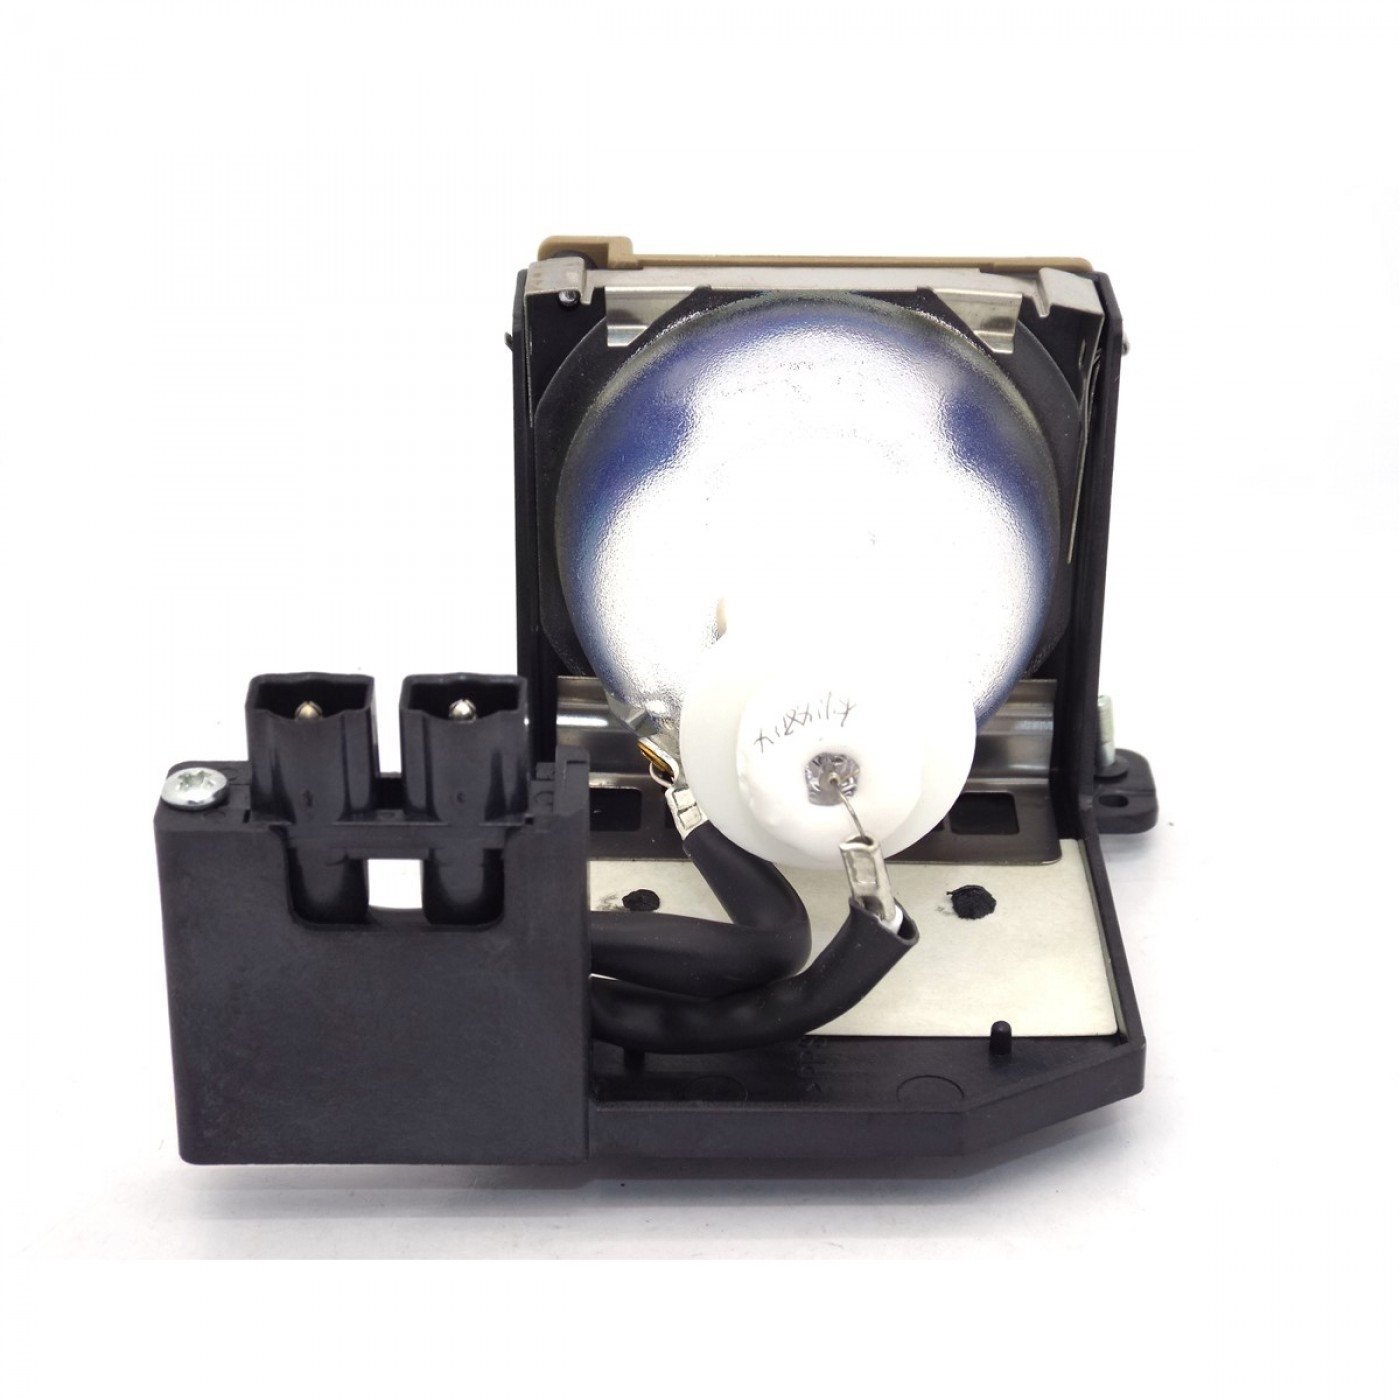 Mitsubishi Projector Bulb Replacement: Mitsubishi XD350UProjector Assembly With Original Osram Bulb